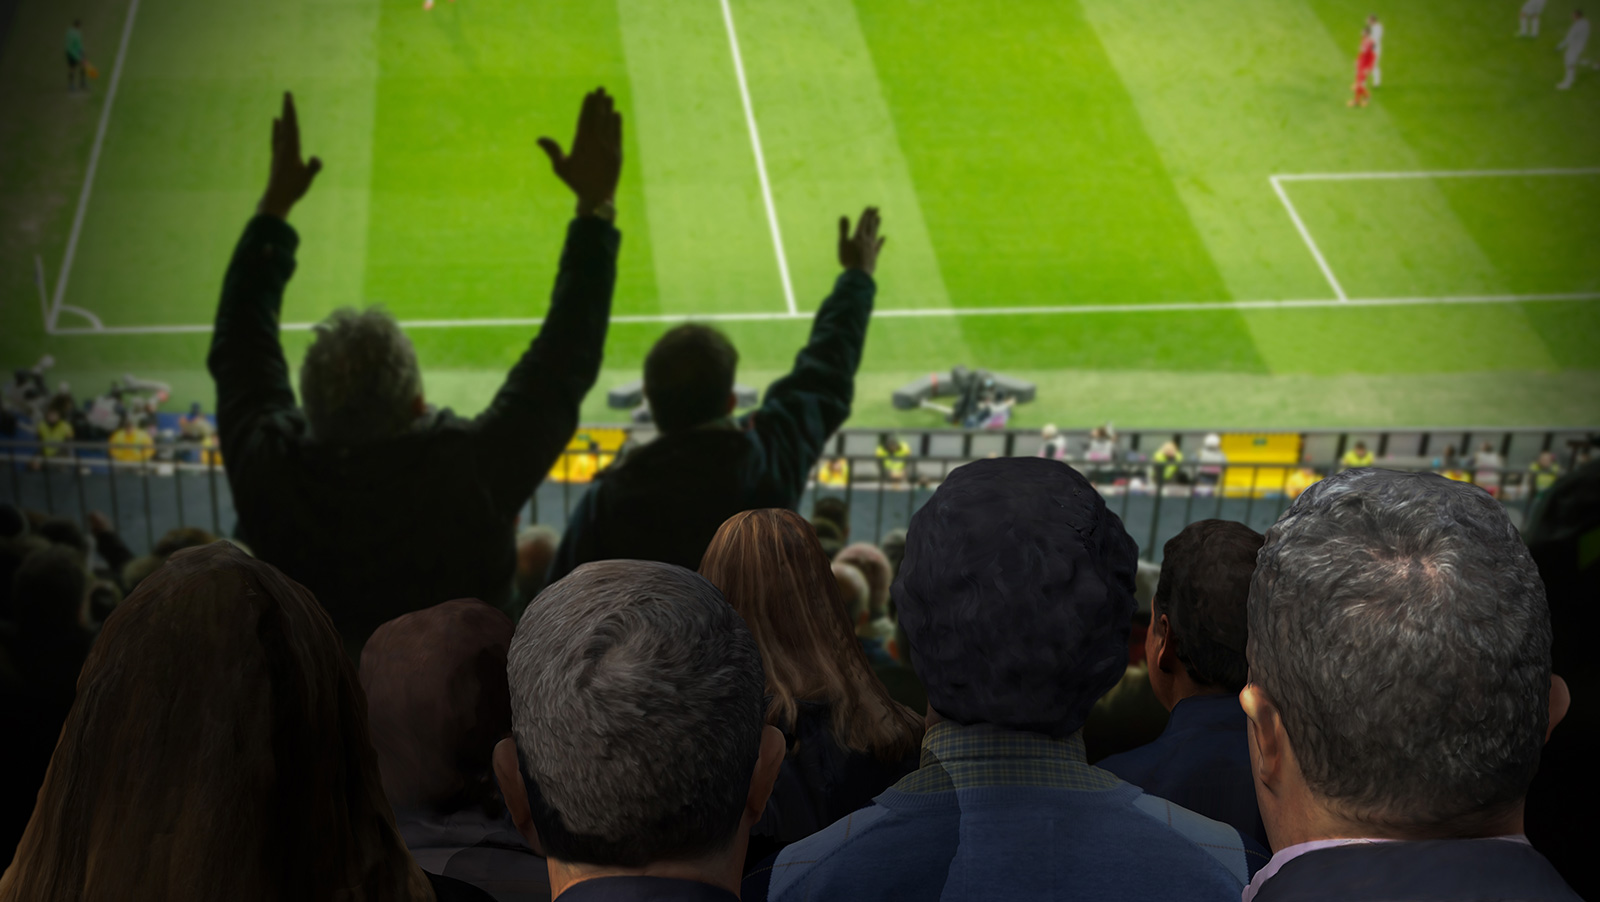 New fantasy sports portal added to the mix in India